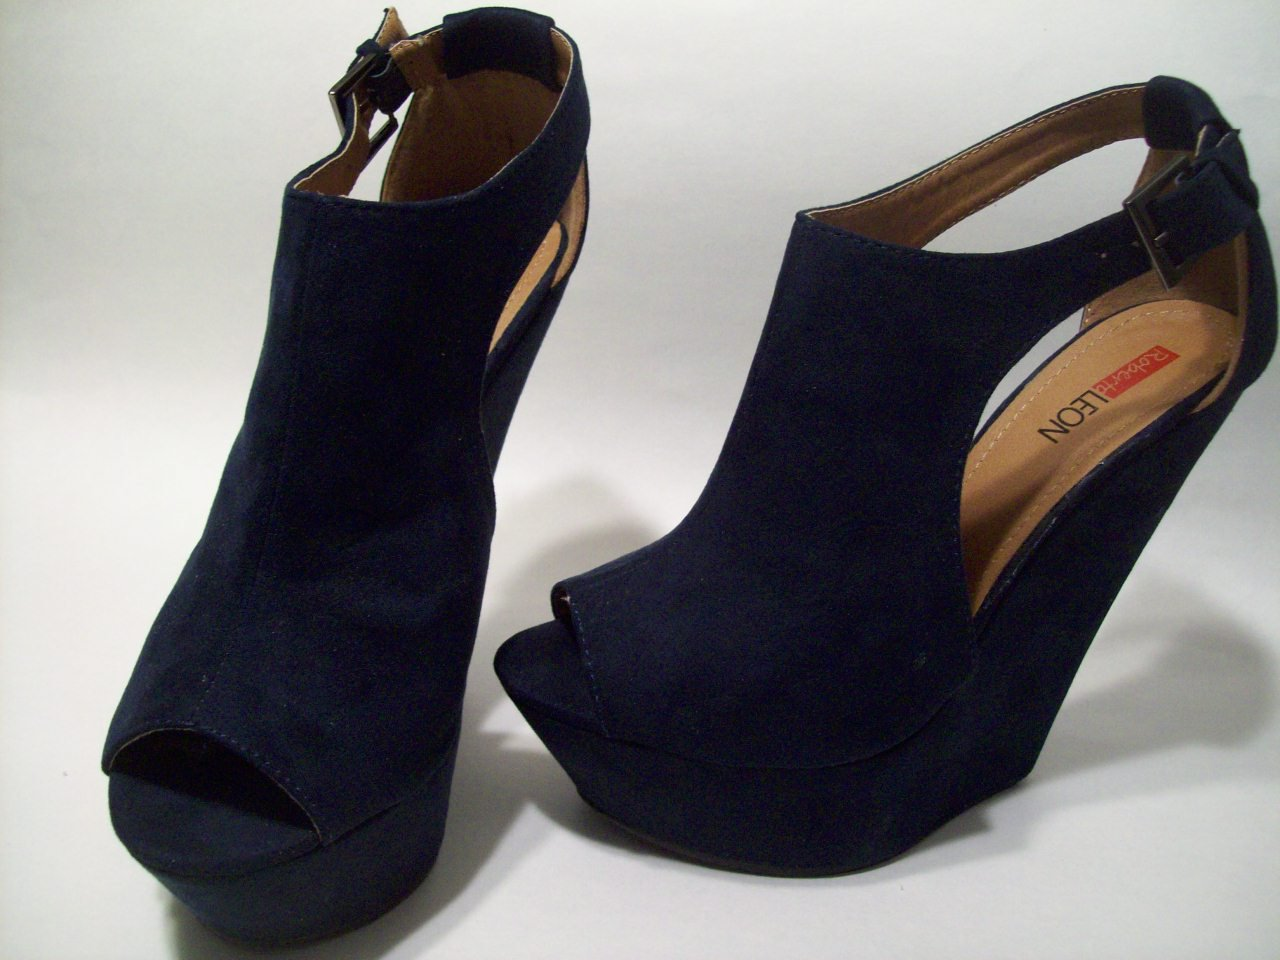 Dark Navy Blue Faux Suede Peep Toe Platform 6 inch Sexy Wedge Heels Shoes 7 1/2 M